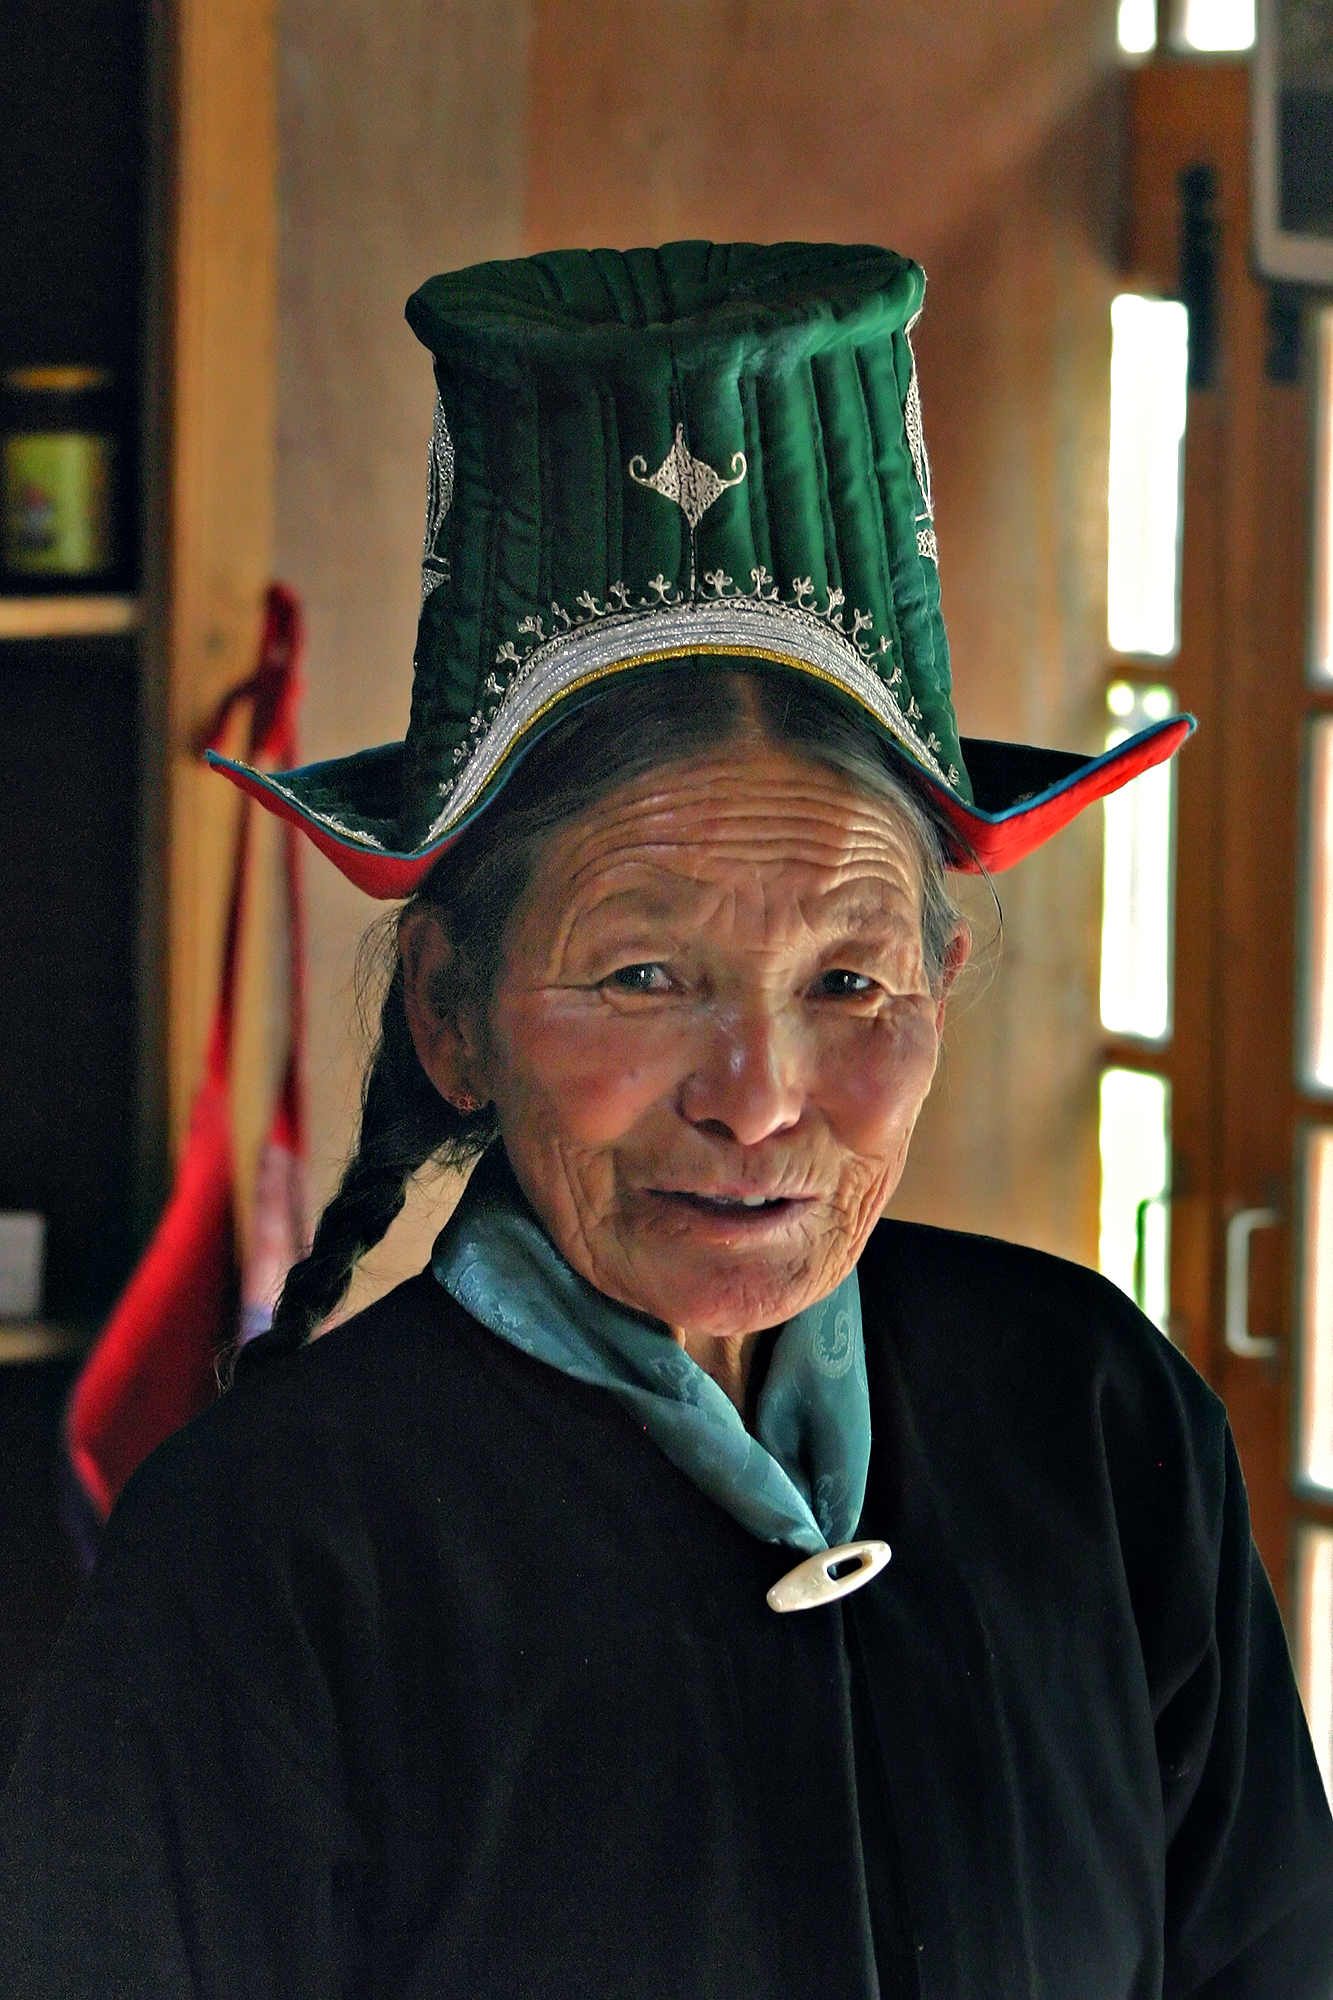 A Ladakhi woman in a traditional dress and hat